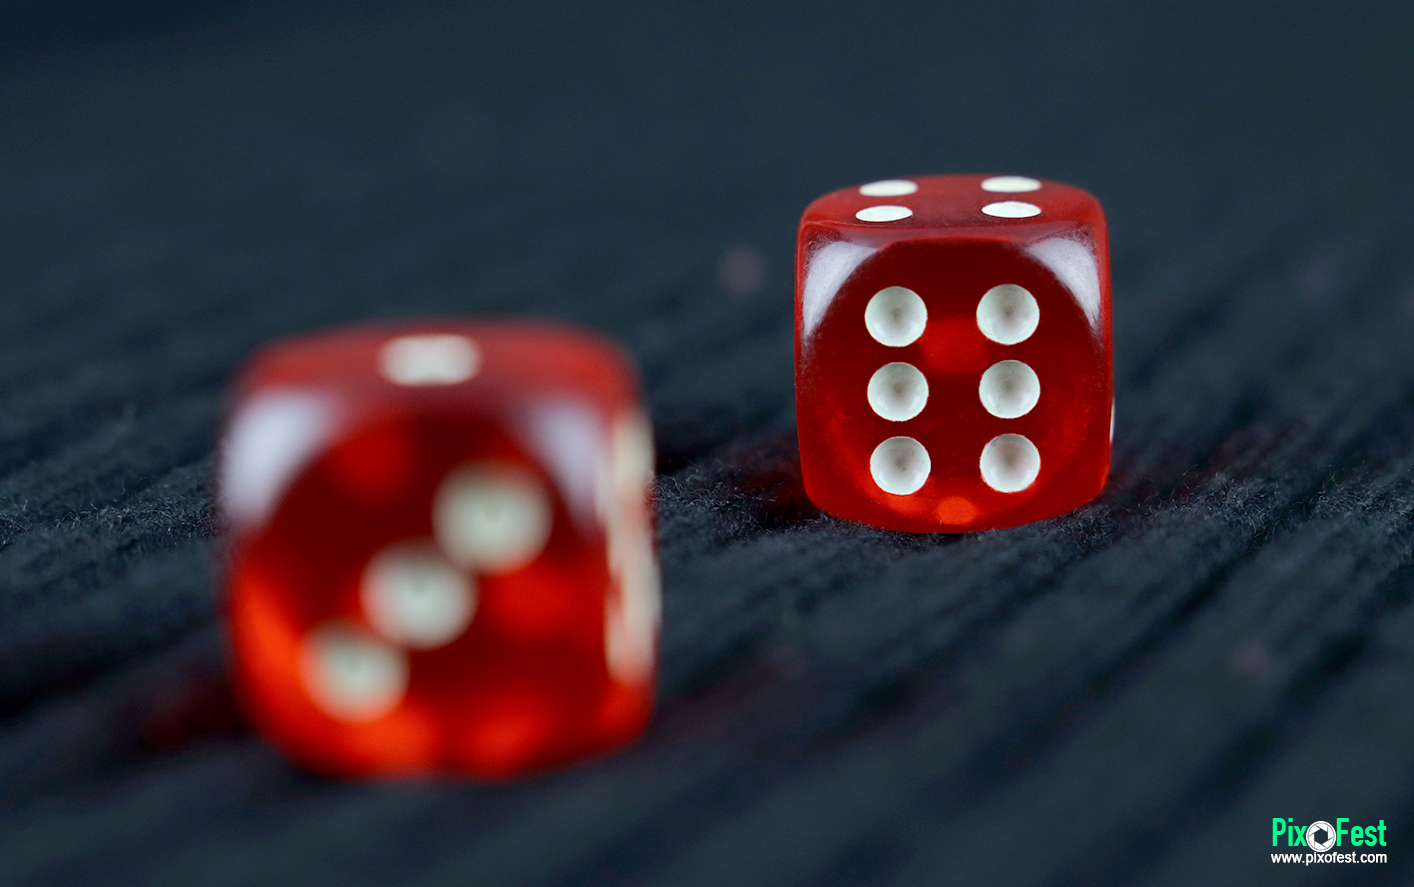 Dice image, Dice picture, Dice, Cube, Cube image, Cube picture, Cube wallpaper,red dice